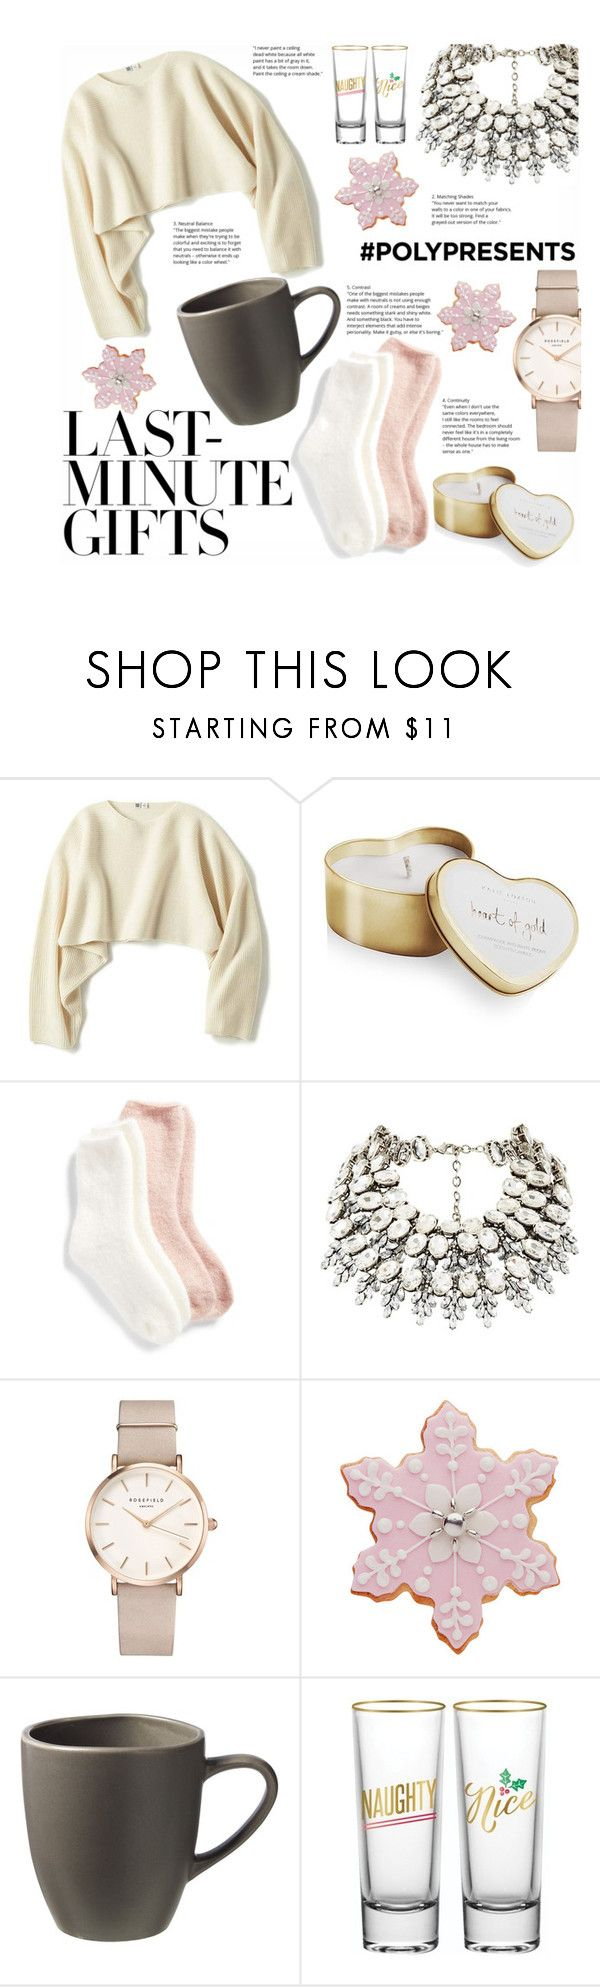 """""""#PolyPresents: Last-Minute Gifts"""" by soyance ❤ liked on Polyvore featuring Uniqlo, Katie Loxton, Lemon, ROSEFIELD, West Elm, contestentry and polyPresents"""